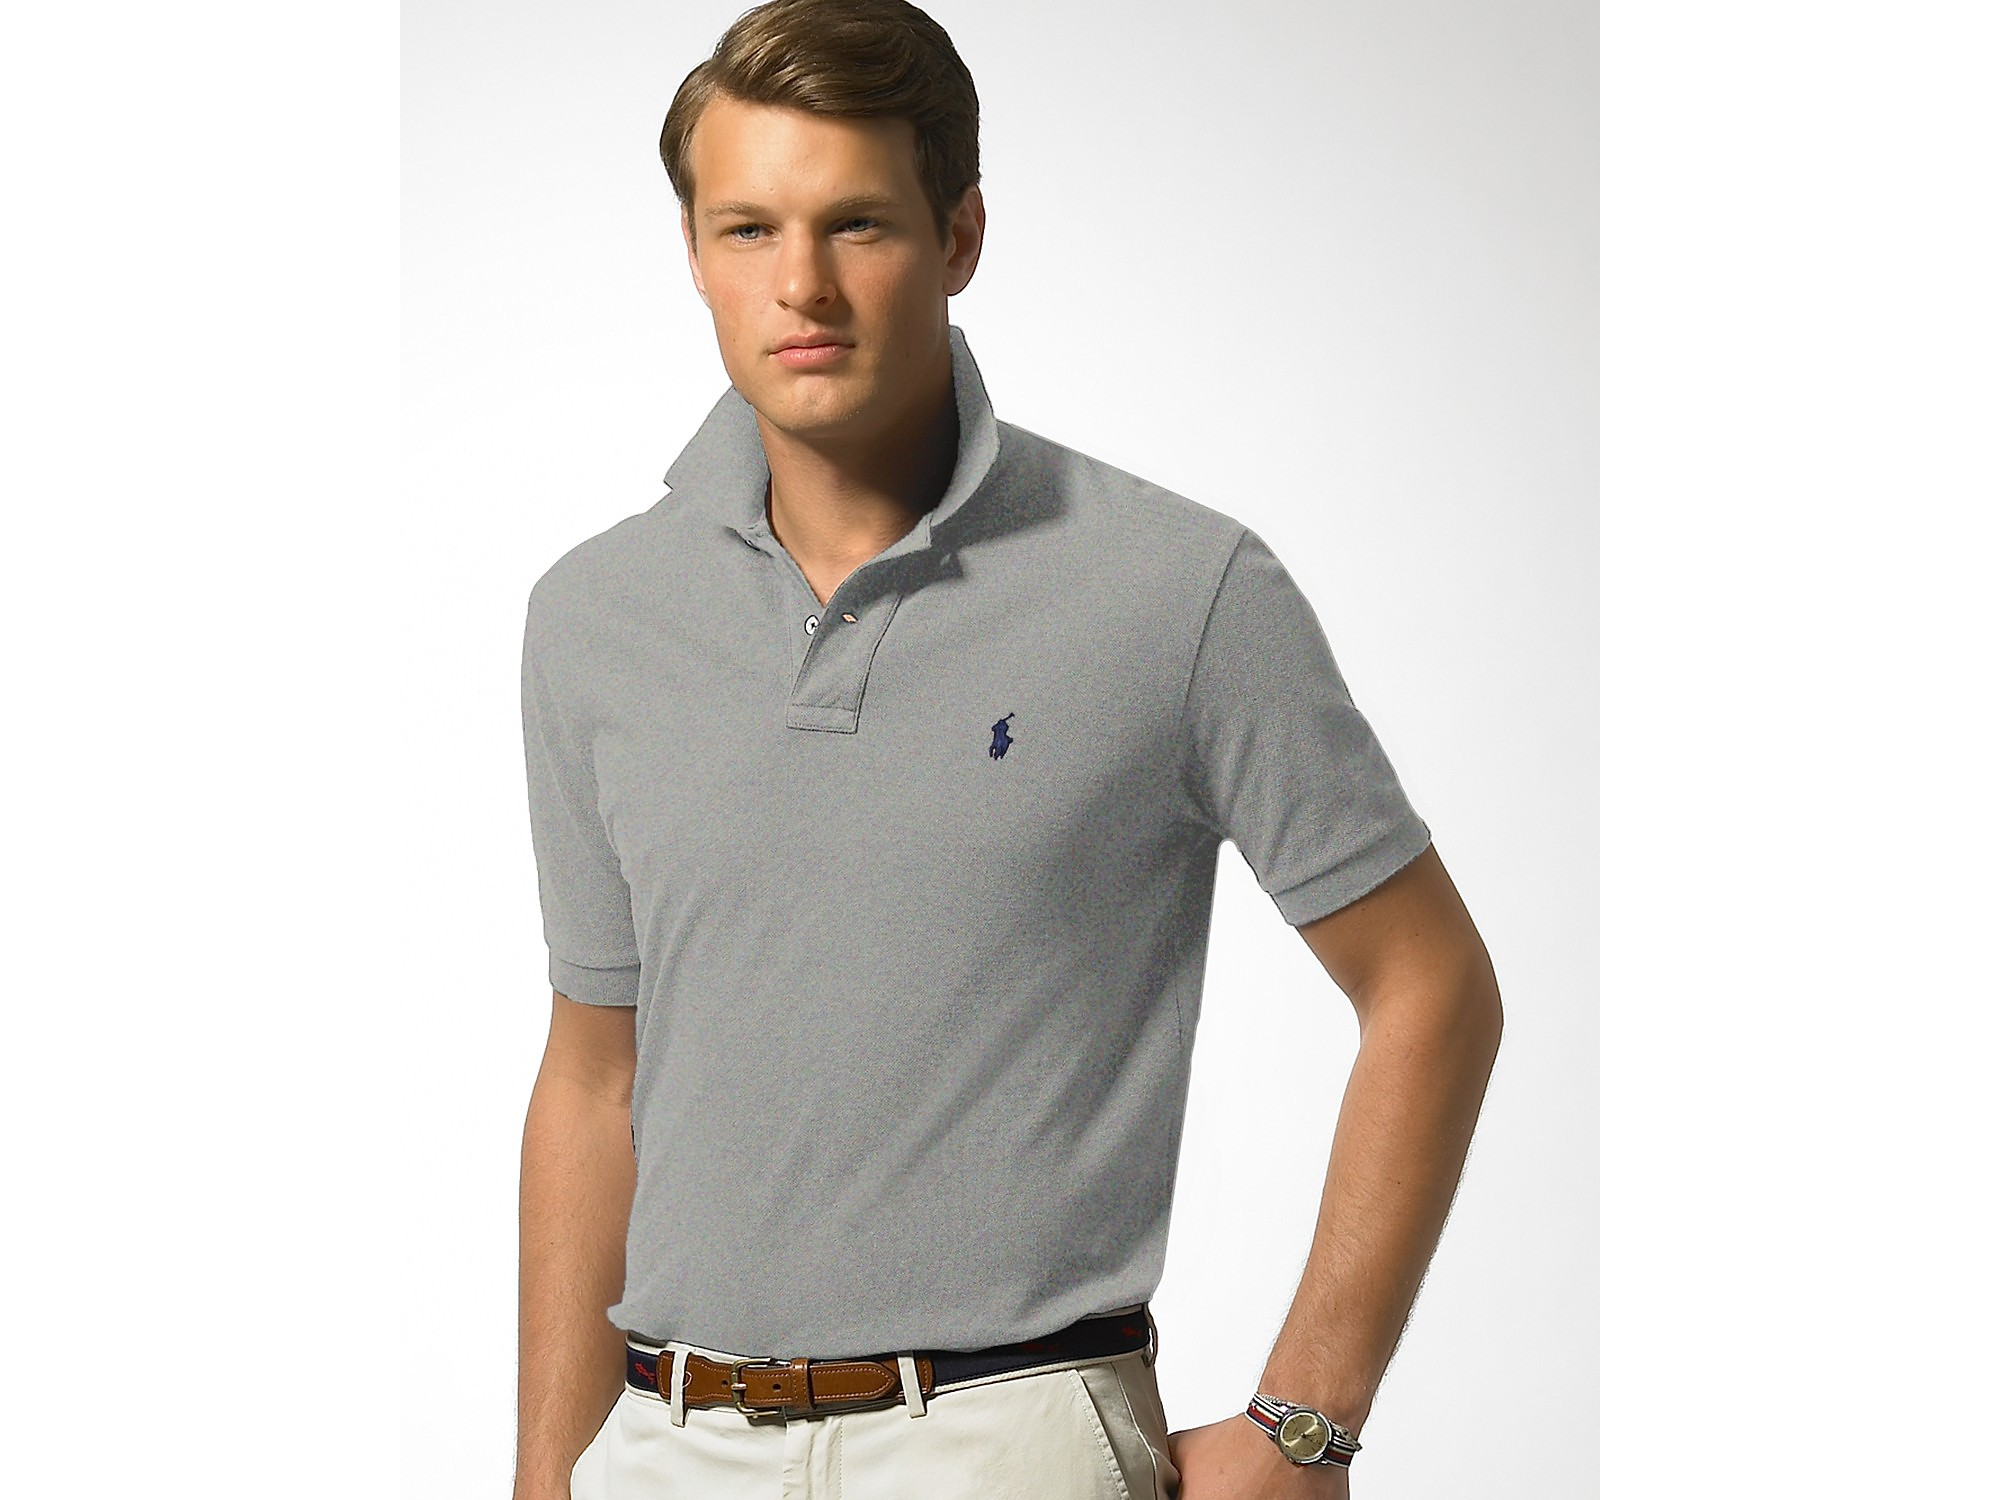 Lyst - Polo ralph lauren Classic Fit Short Sleeved Cotton ...